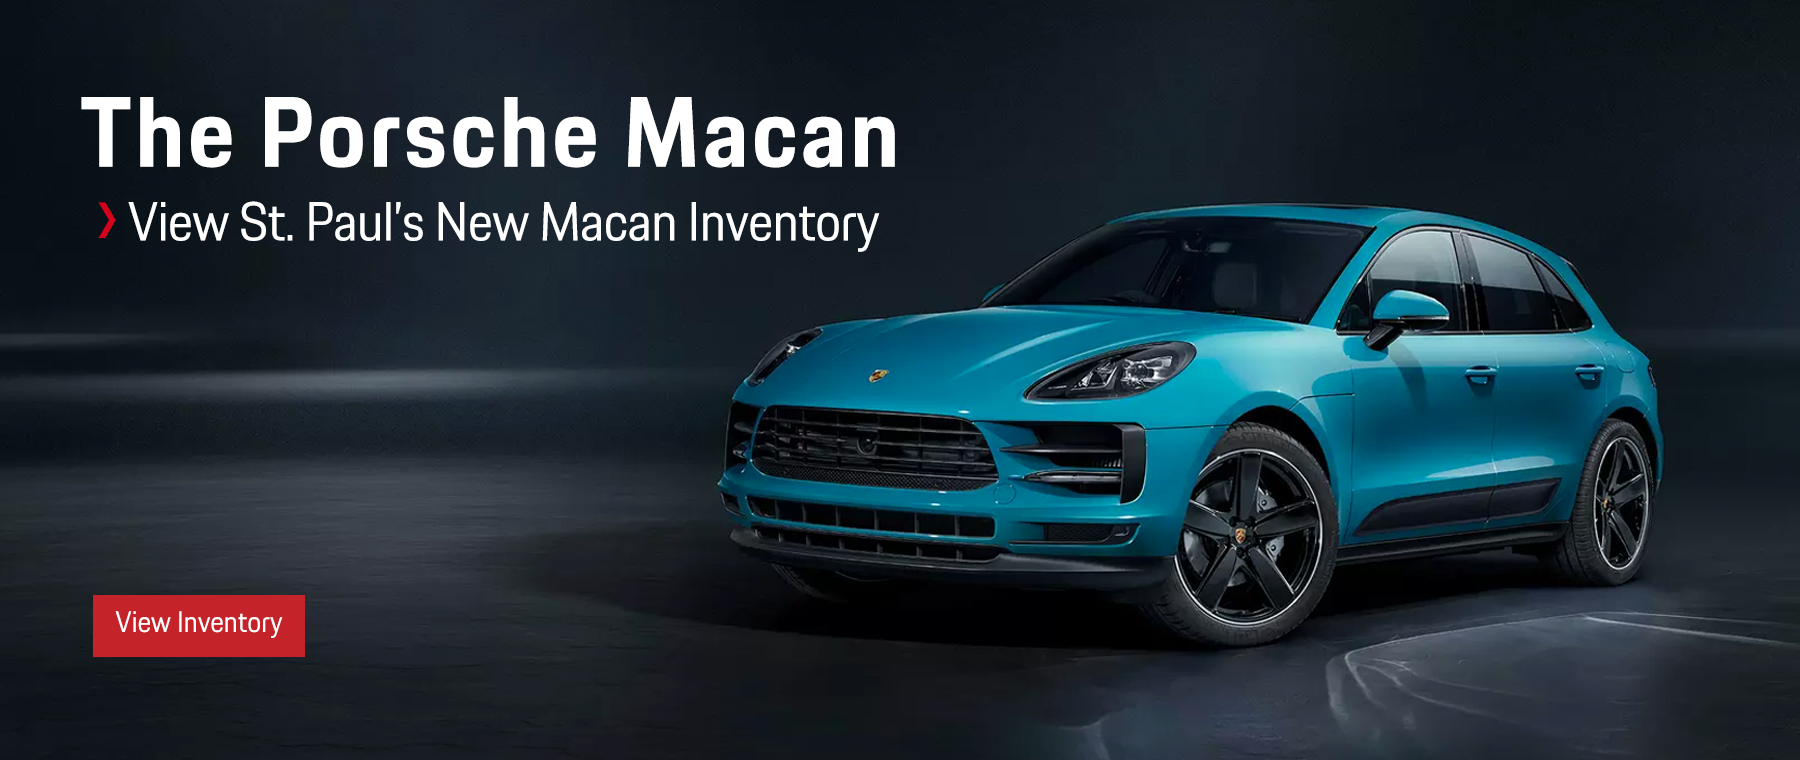 New Porsche Macan: 2019 and 2020 Inventory